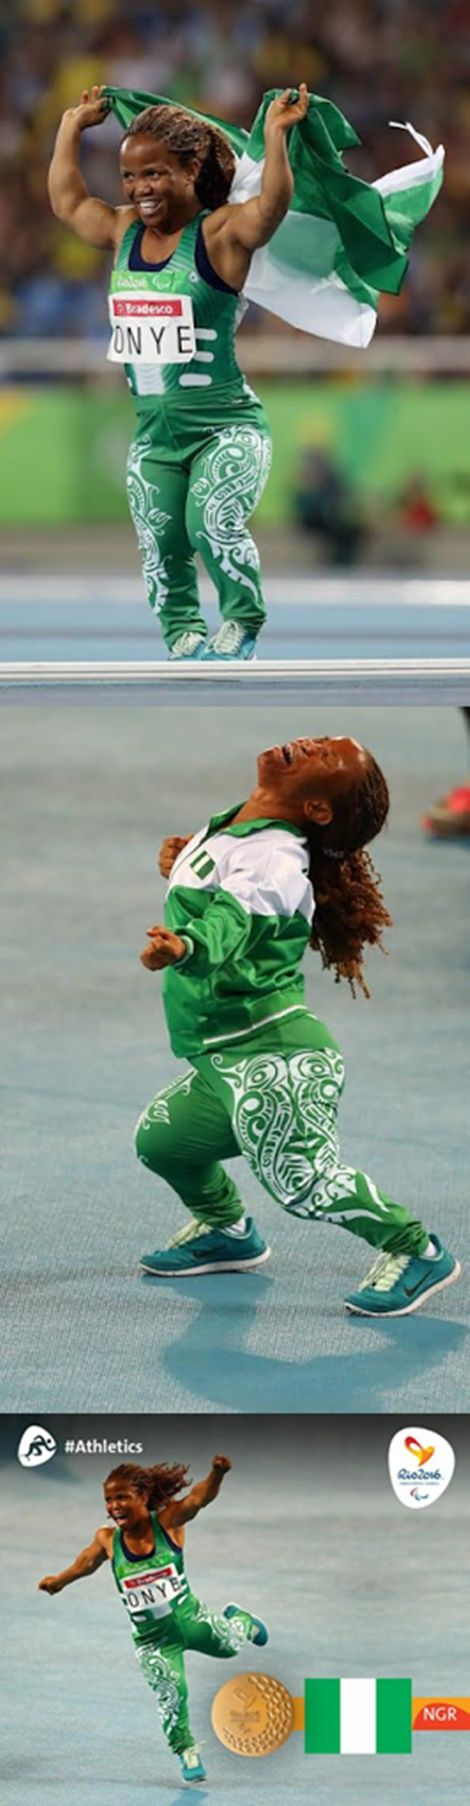 Rio Paralympics: Nigeria's Onye Lauritta Wins Gold (Photos)